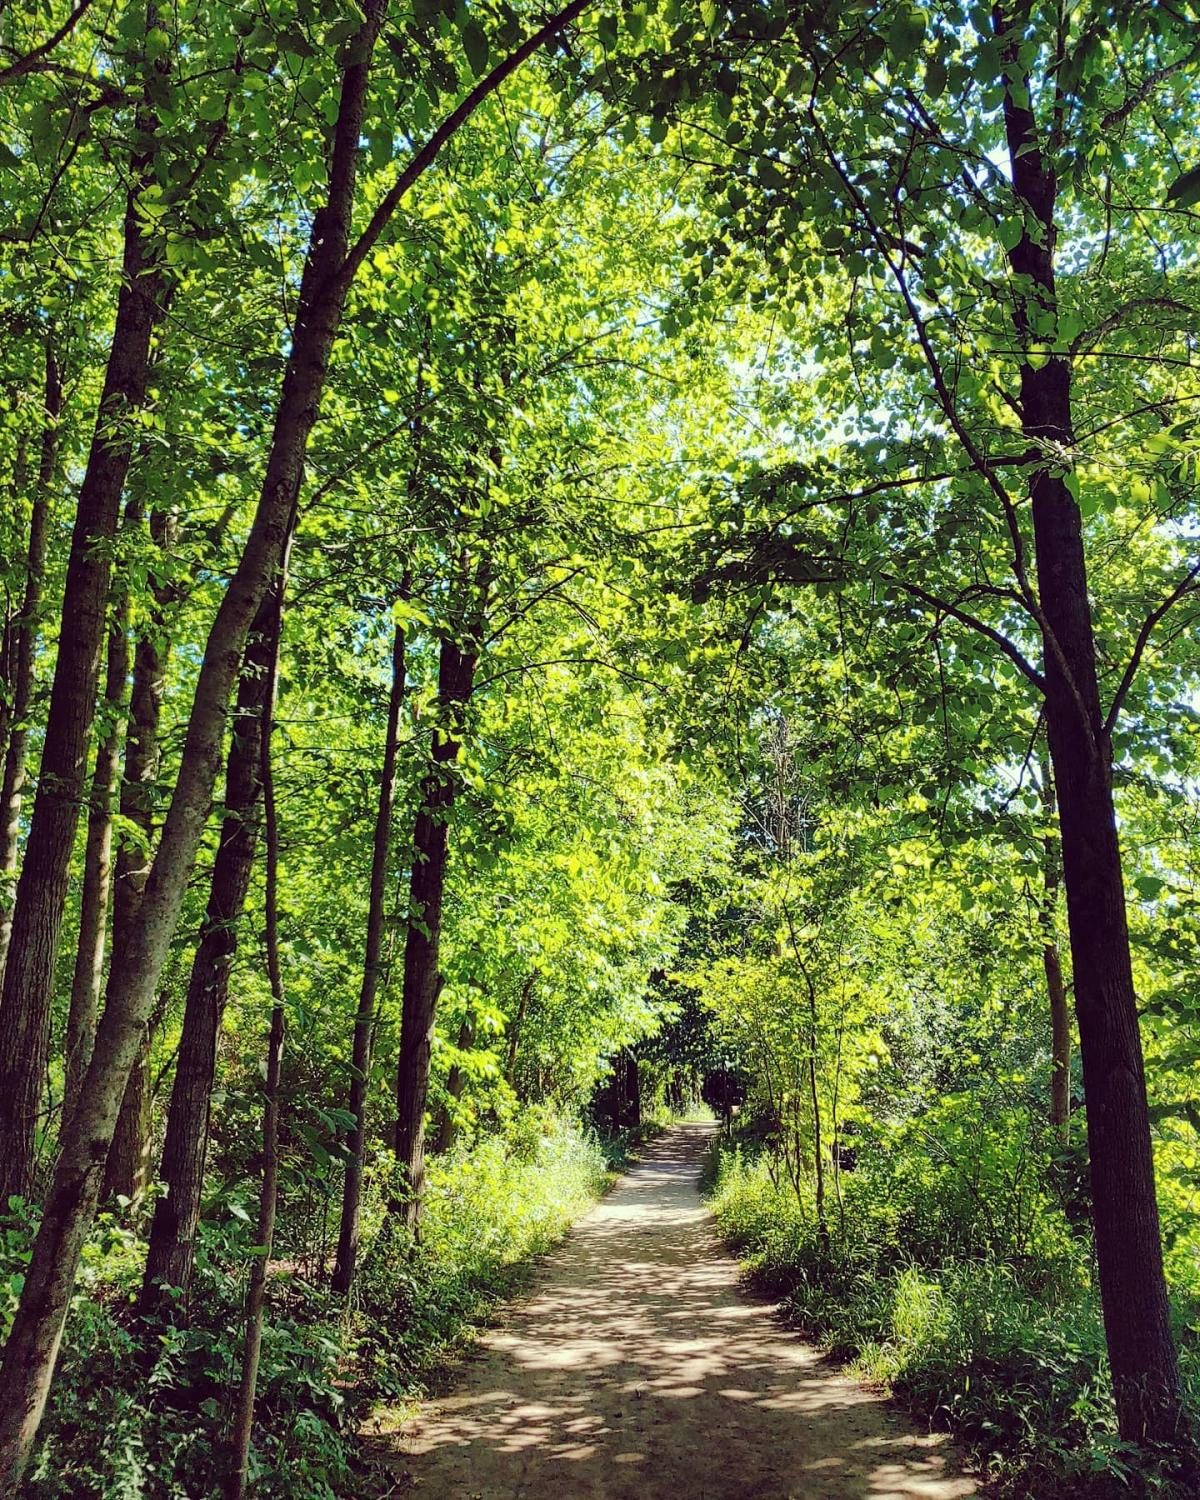 Natural surface trail winding through the canopy of trees at Chippewa Nature Center in Midland